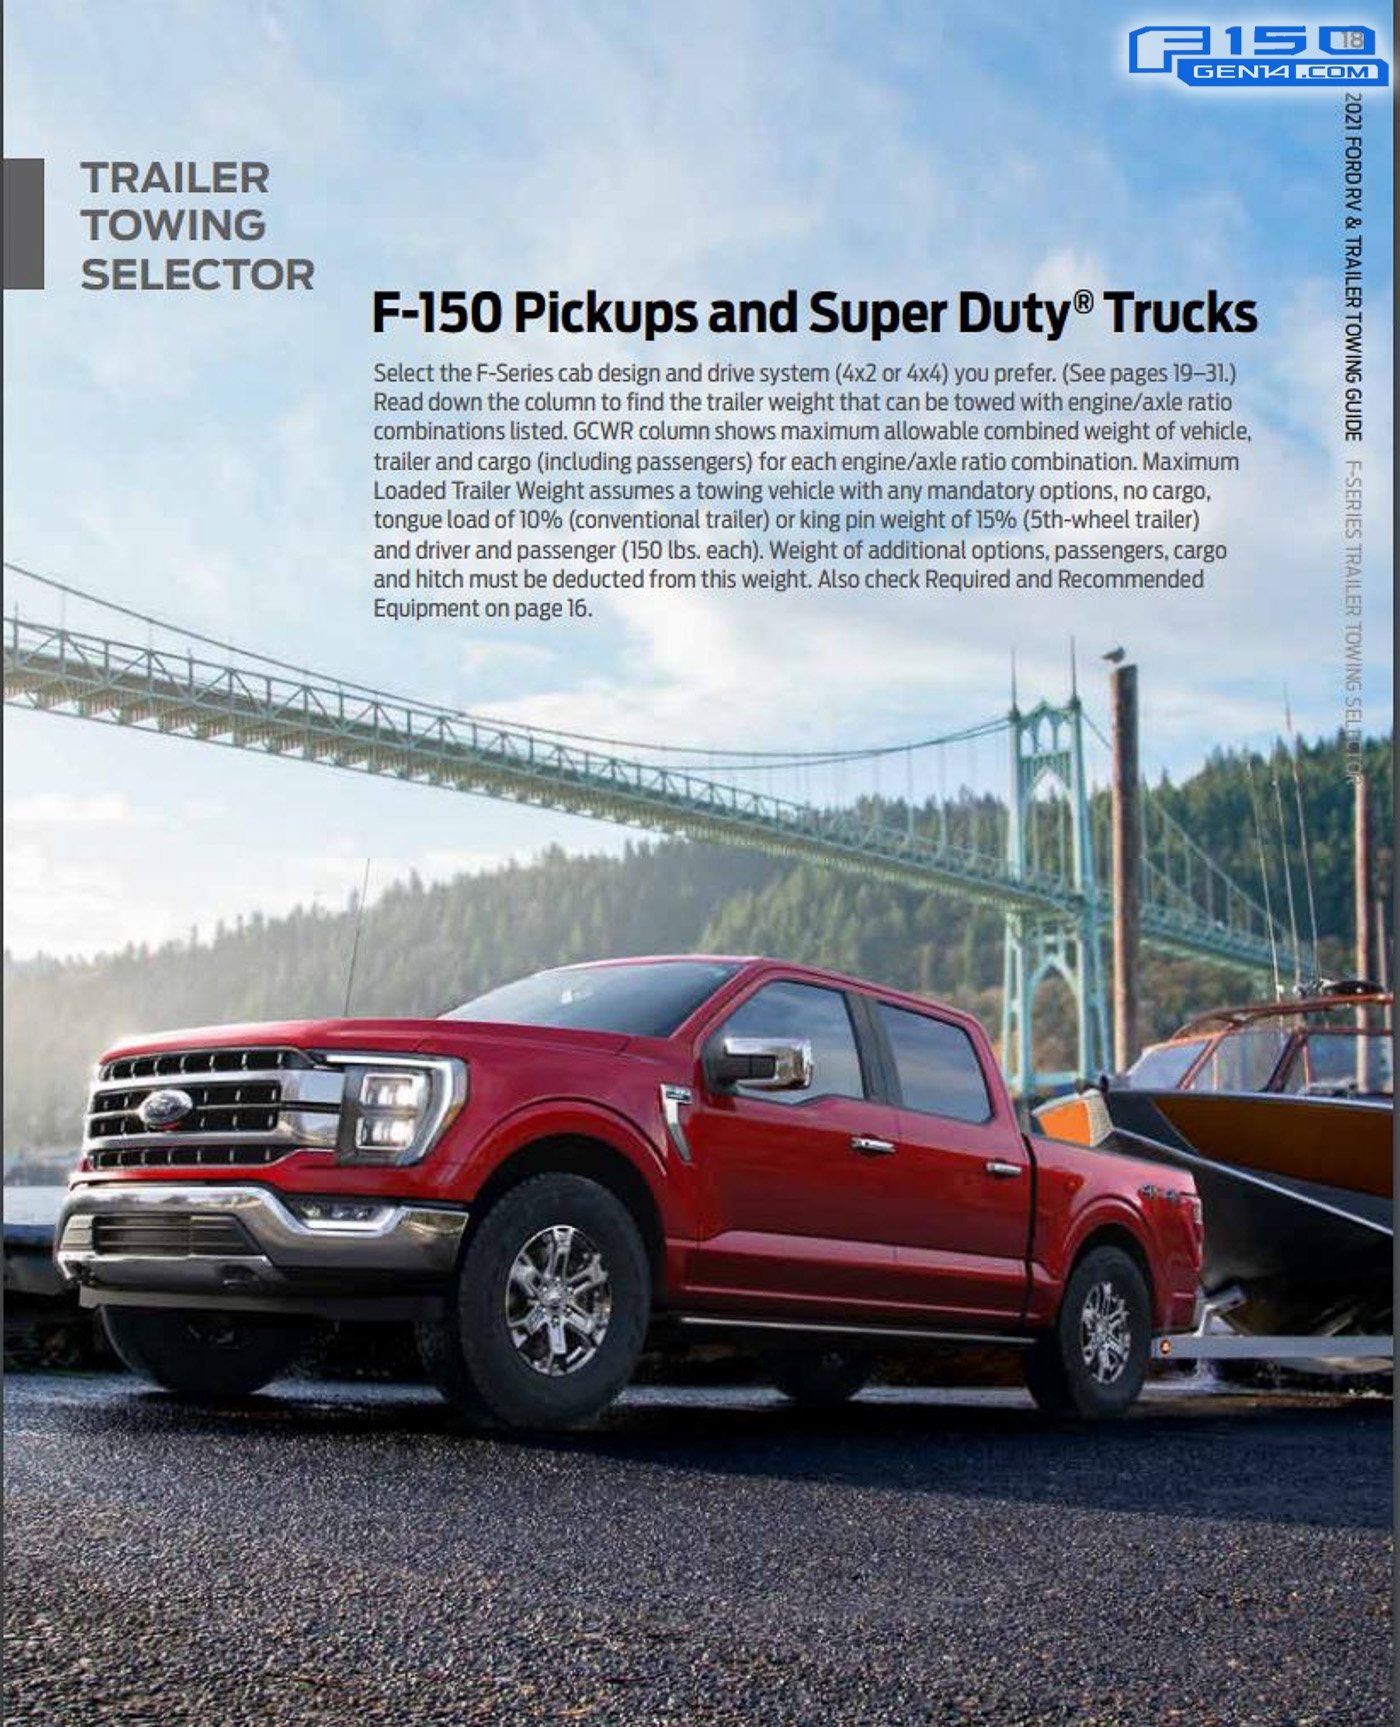 2021-F-150-Towing-Payload-Capacity-Guide-05.jpg